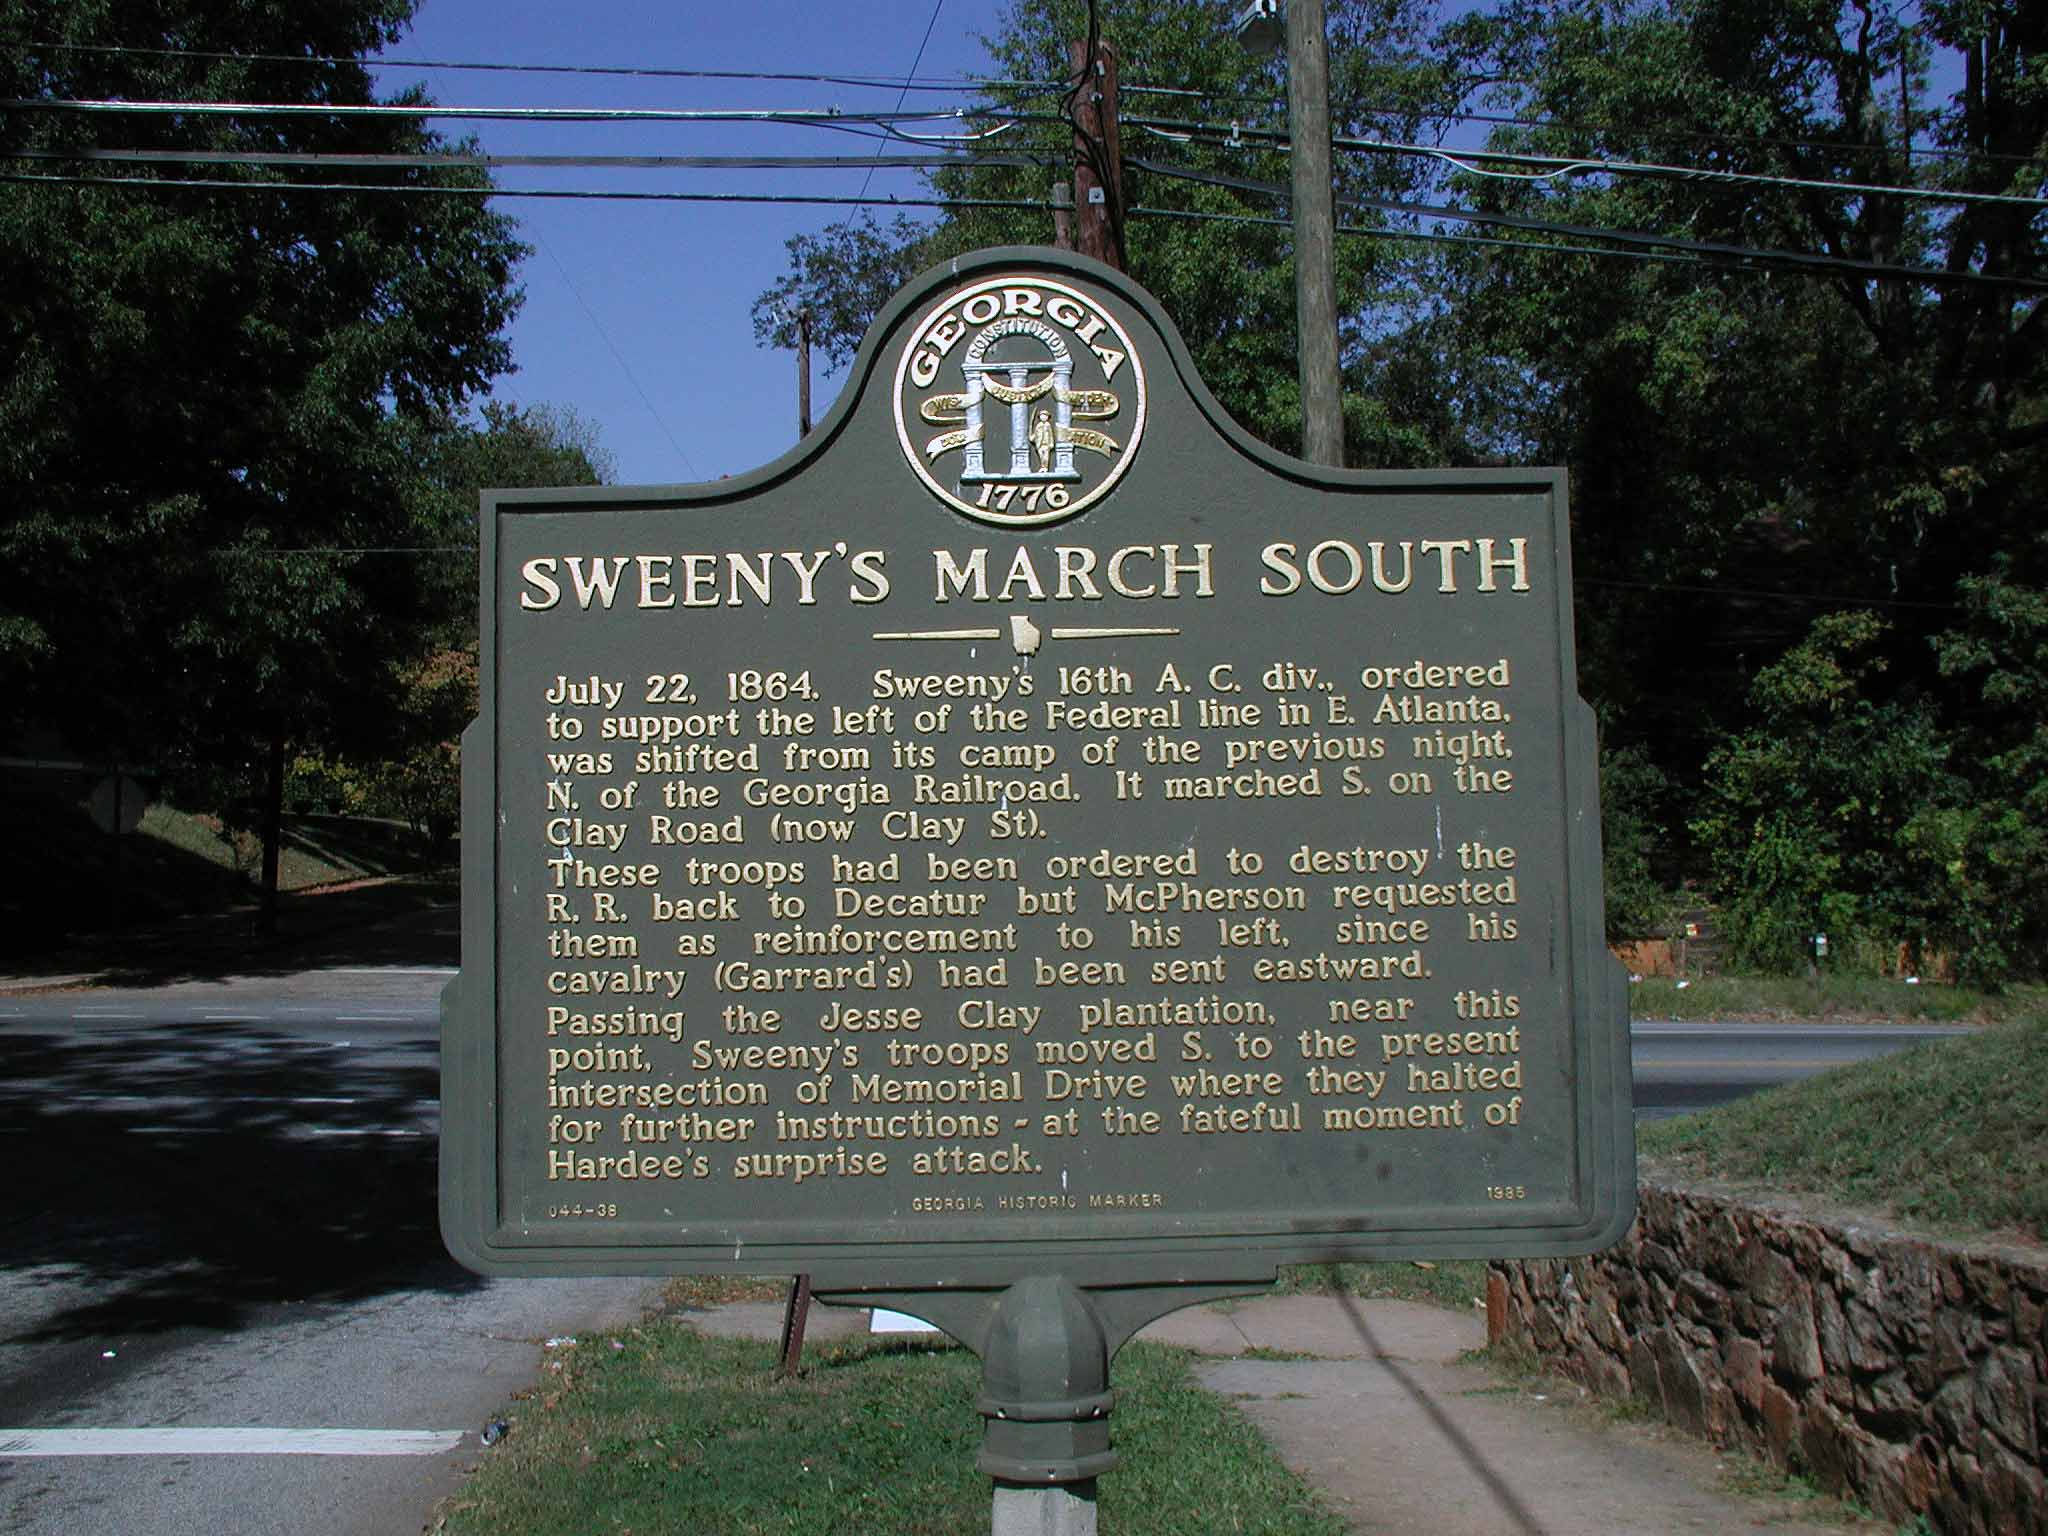 Sweeny's March South, click photo to enlarge.